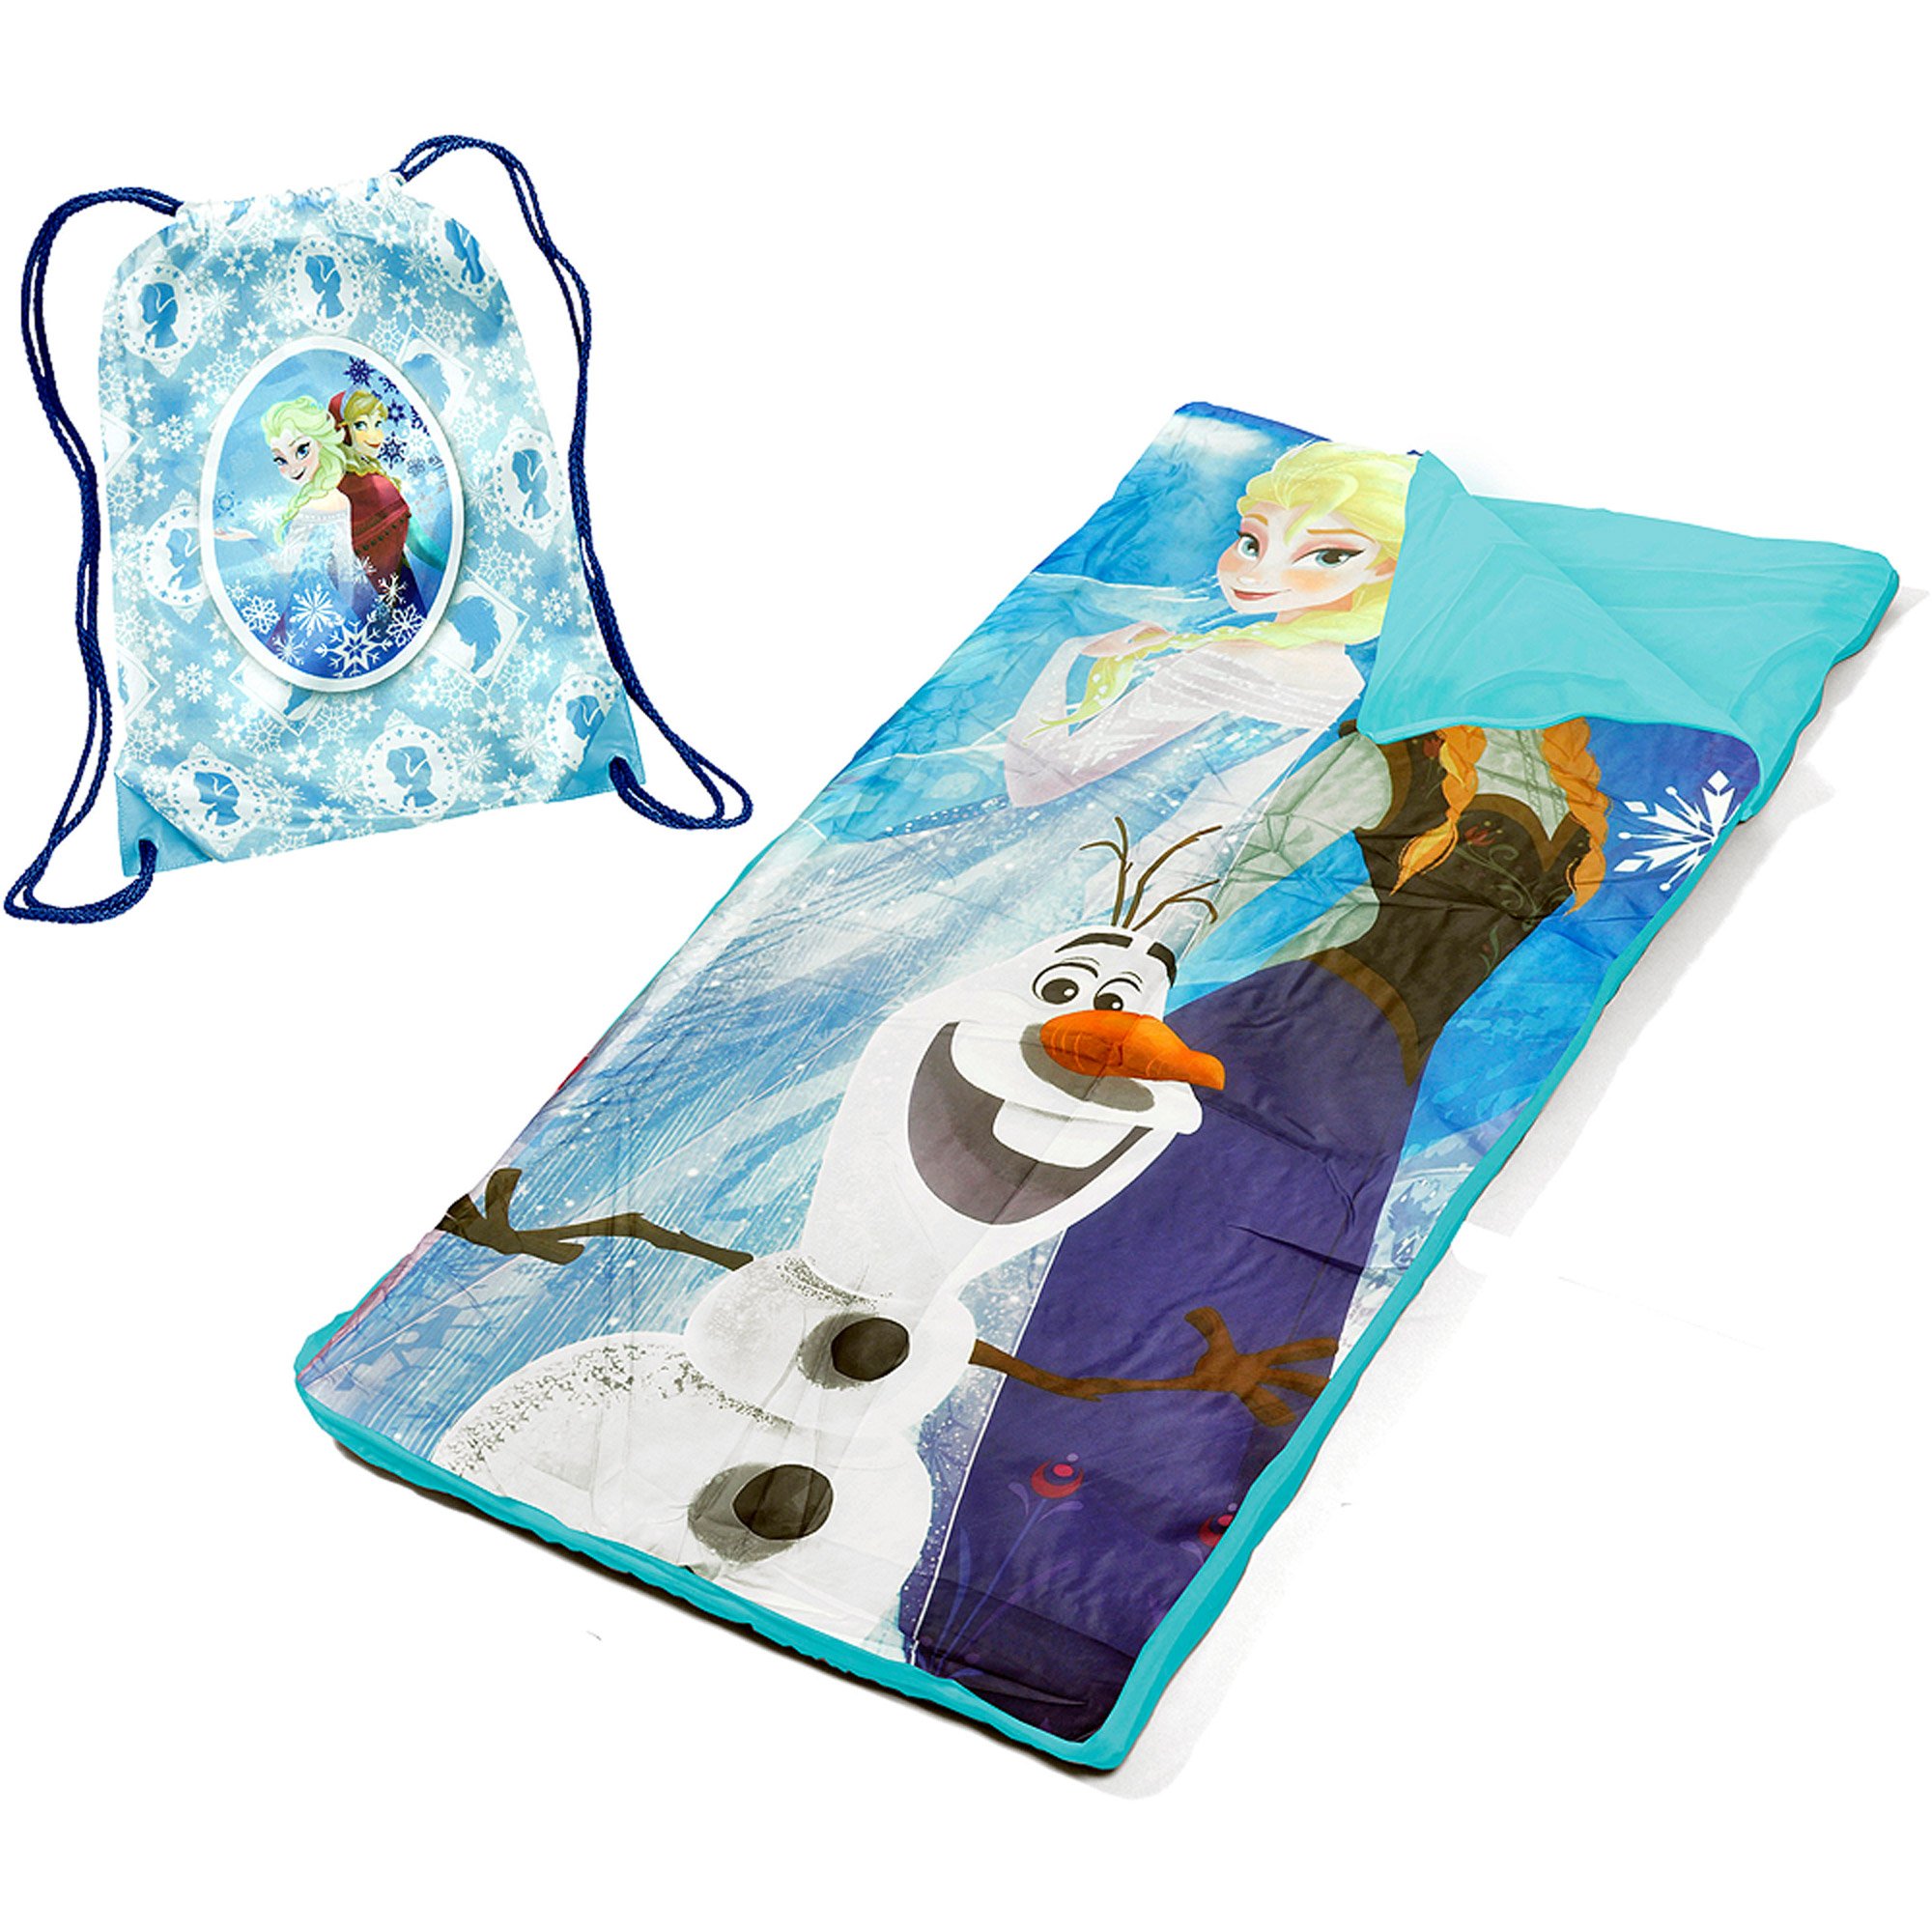 Disney Frozen Slumber Set Nap Mat with BONUS Sling Bag - Walmart.com